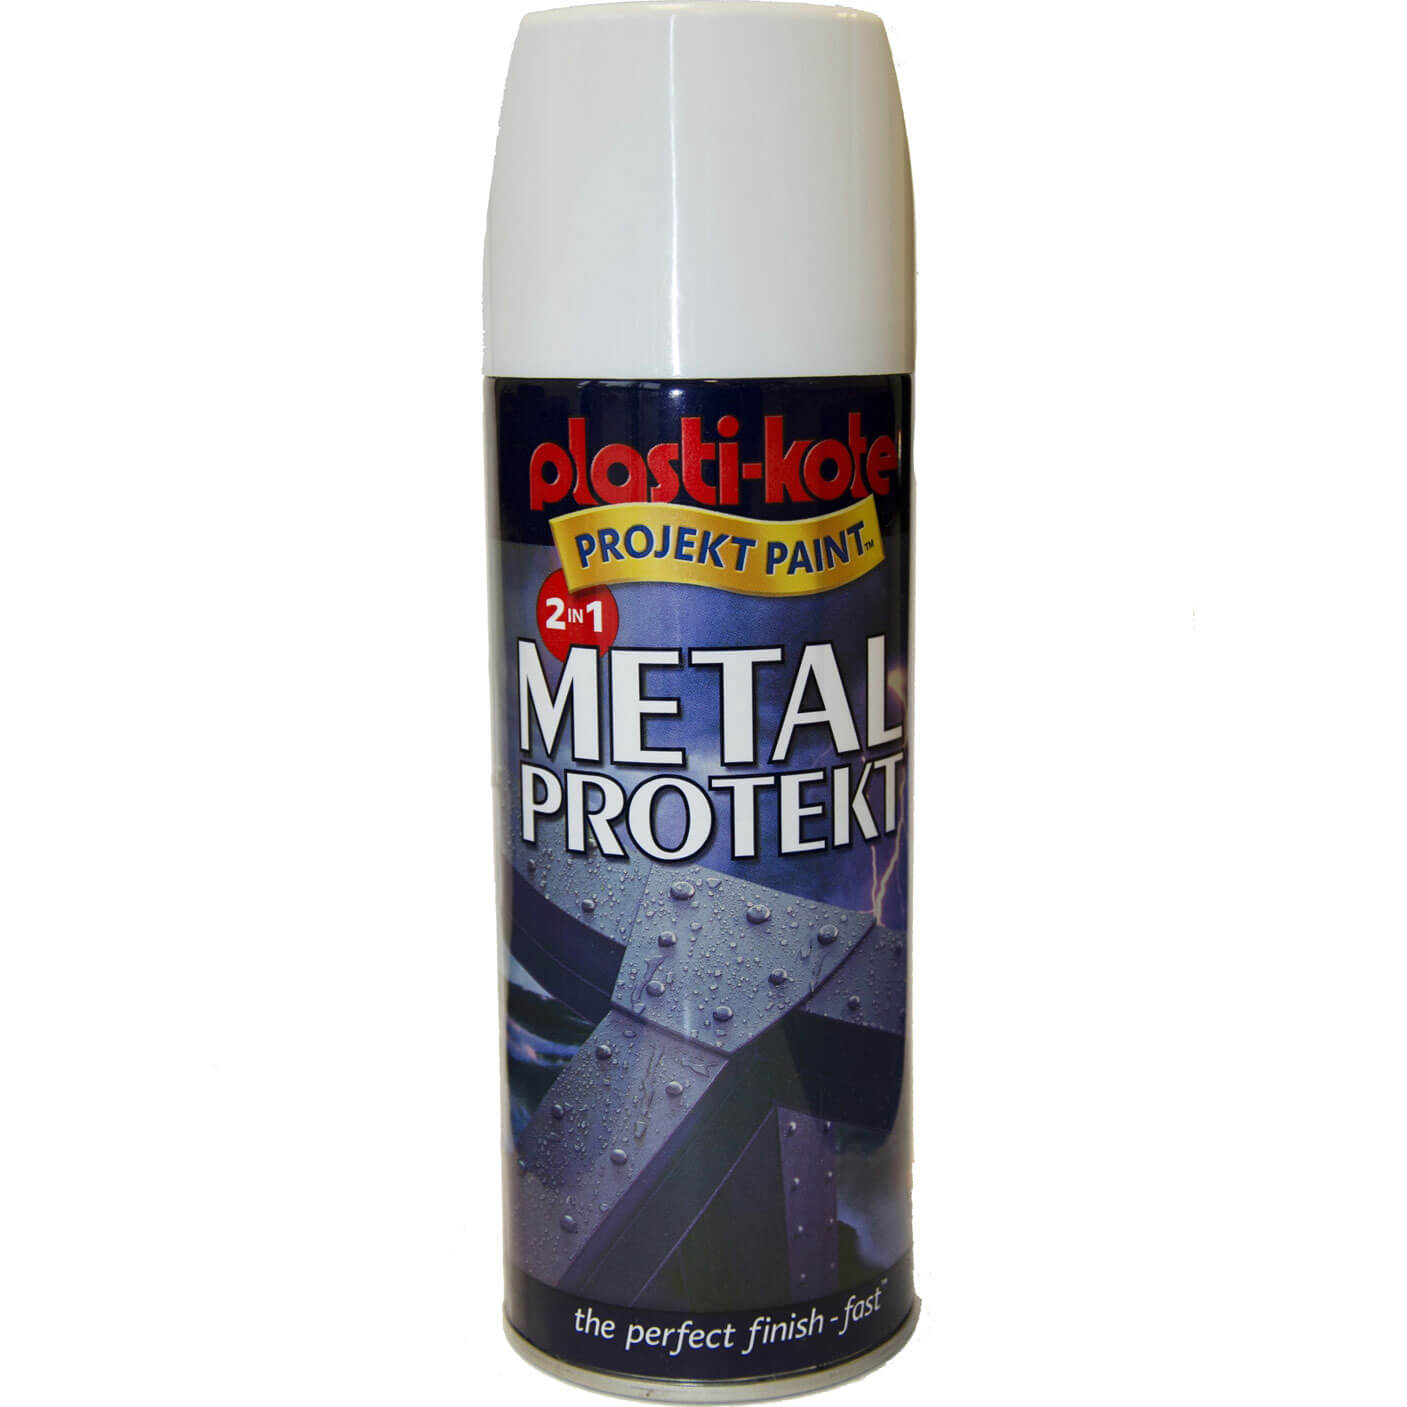 Plastikote Metal Protekt Aerosol Spray Paint Brown 400ml